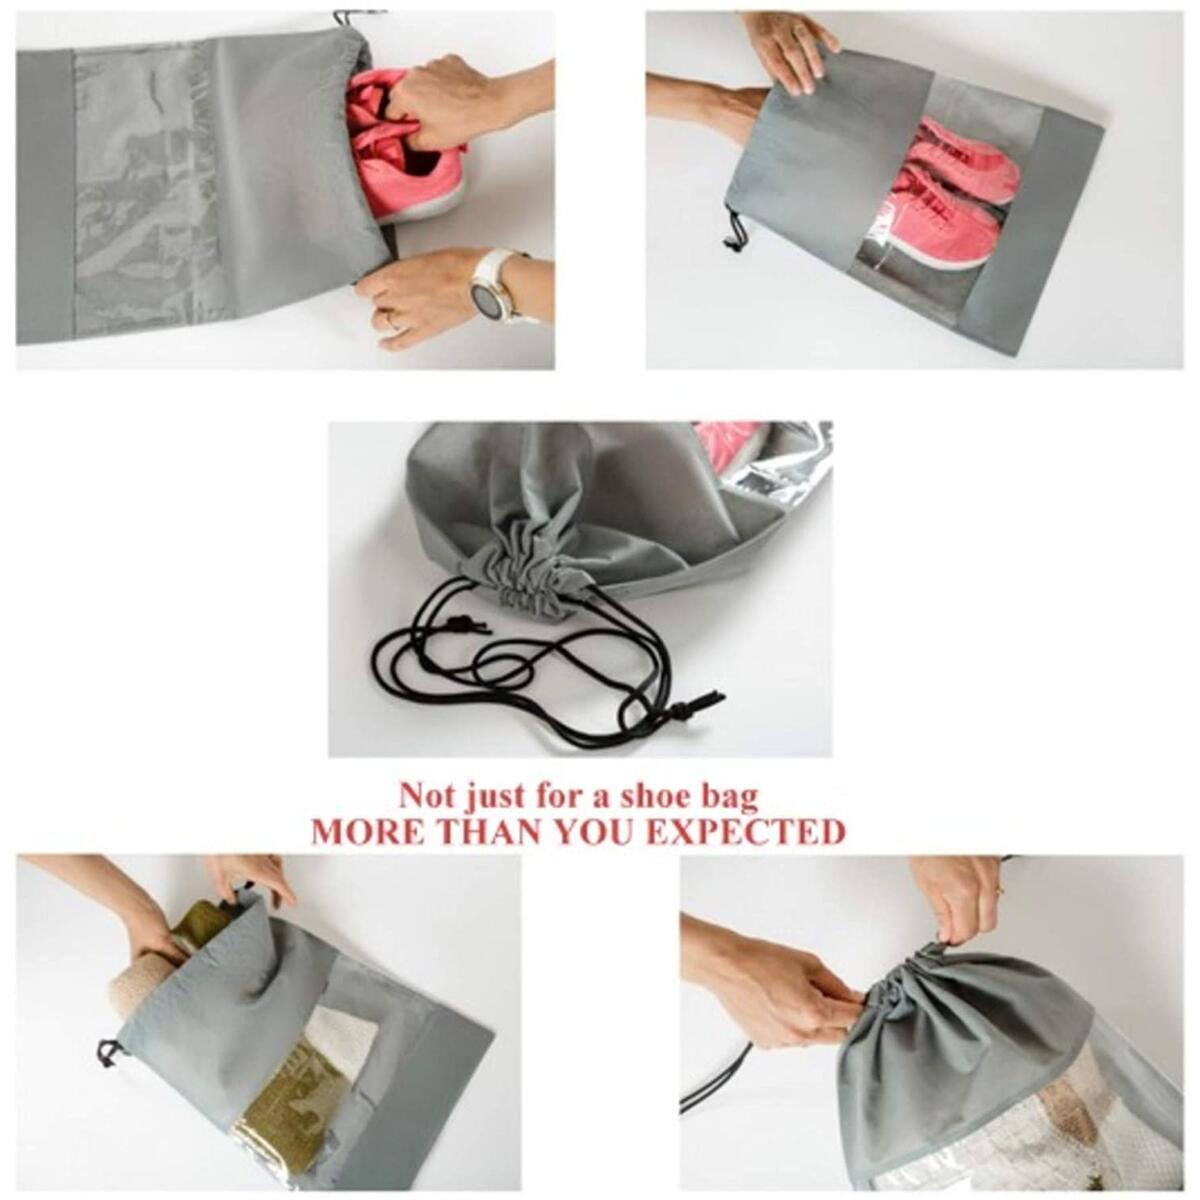 Foldable Underbed Storage Bag + 2 Shoe Bag Bonus